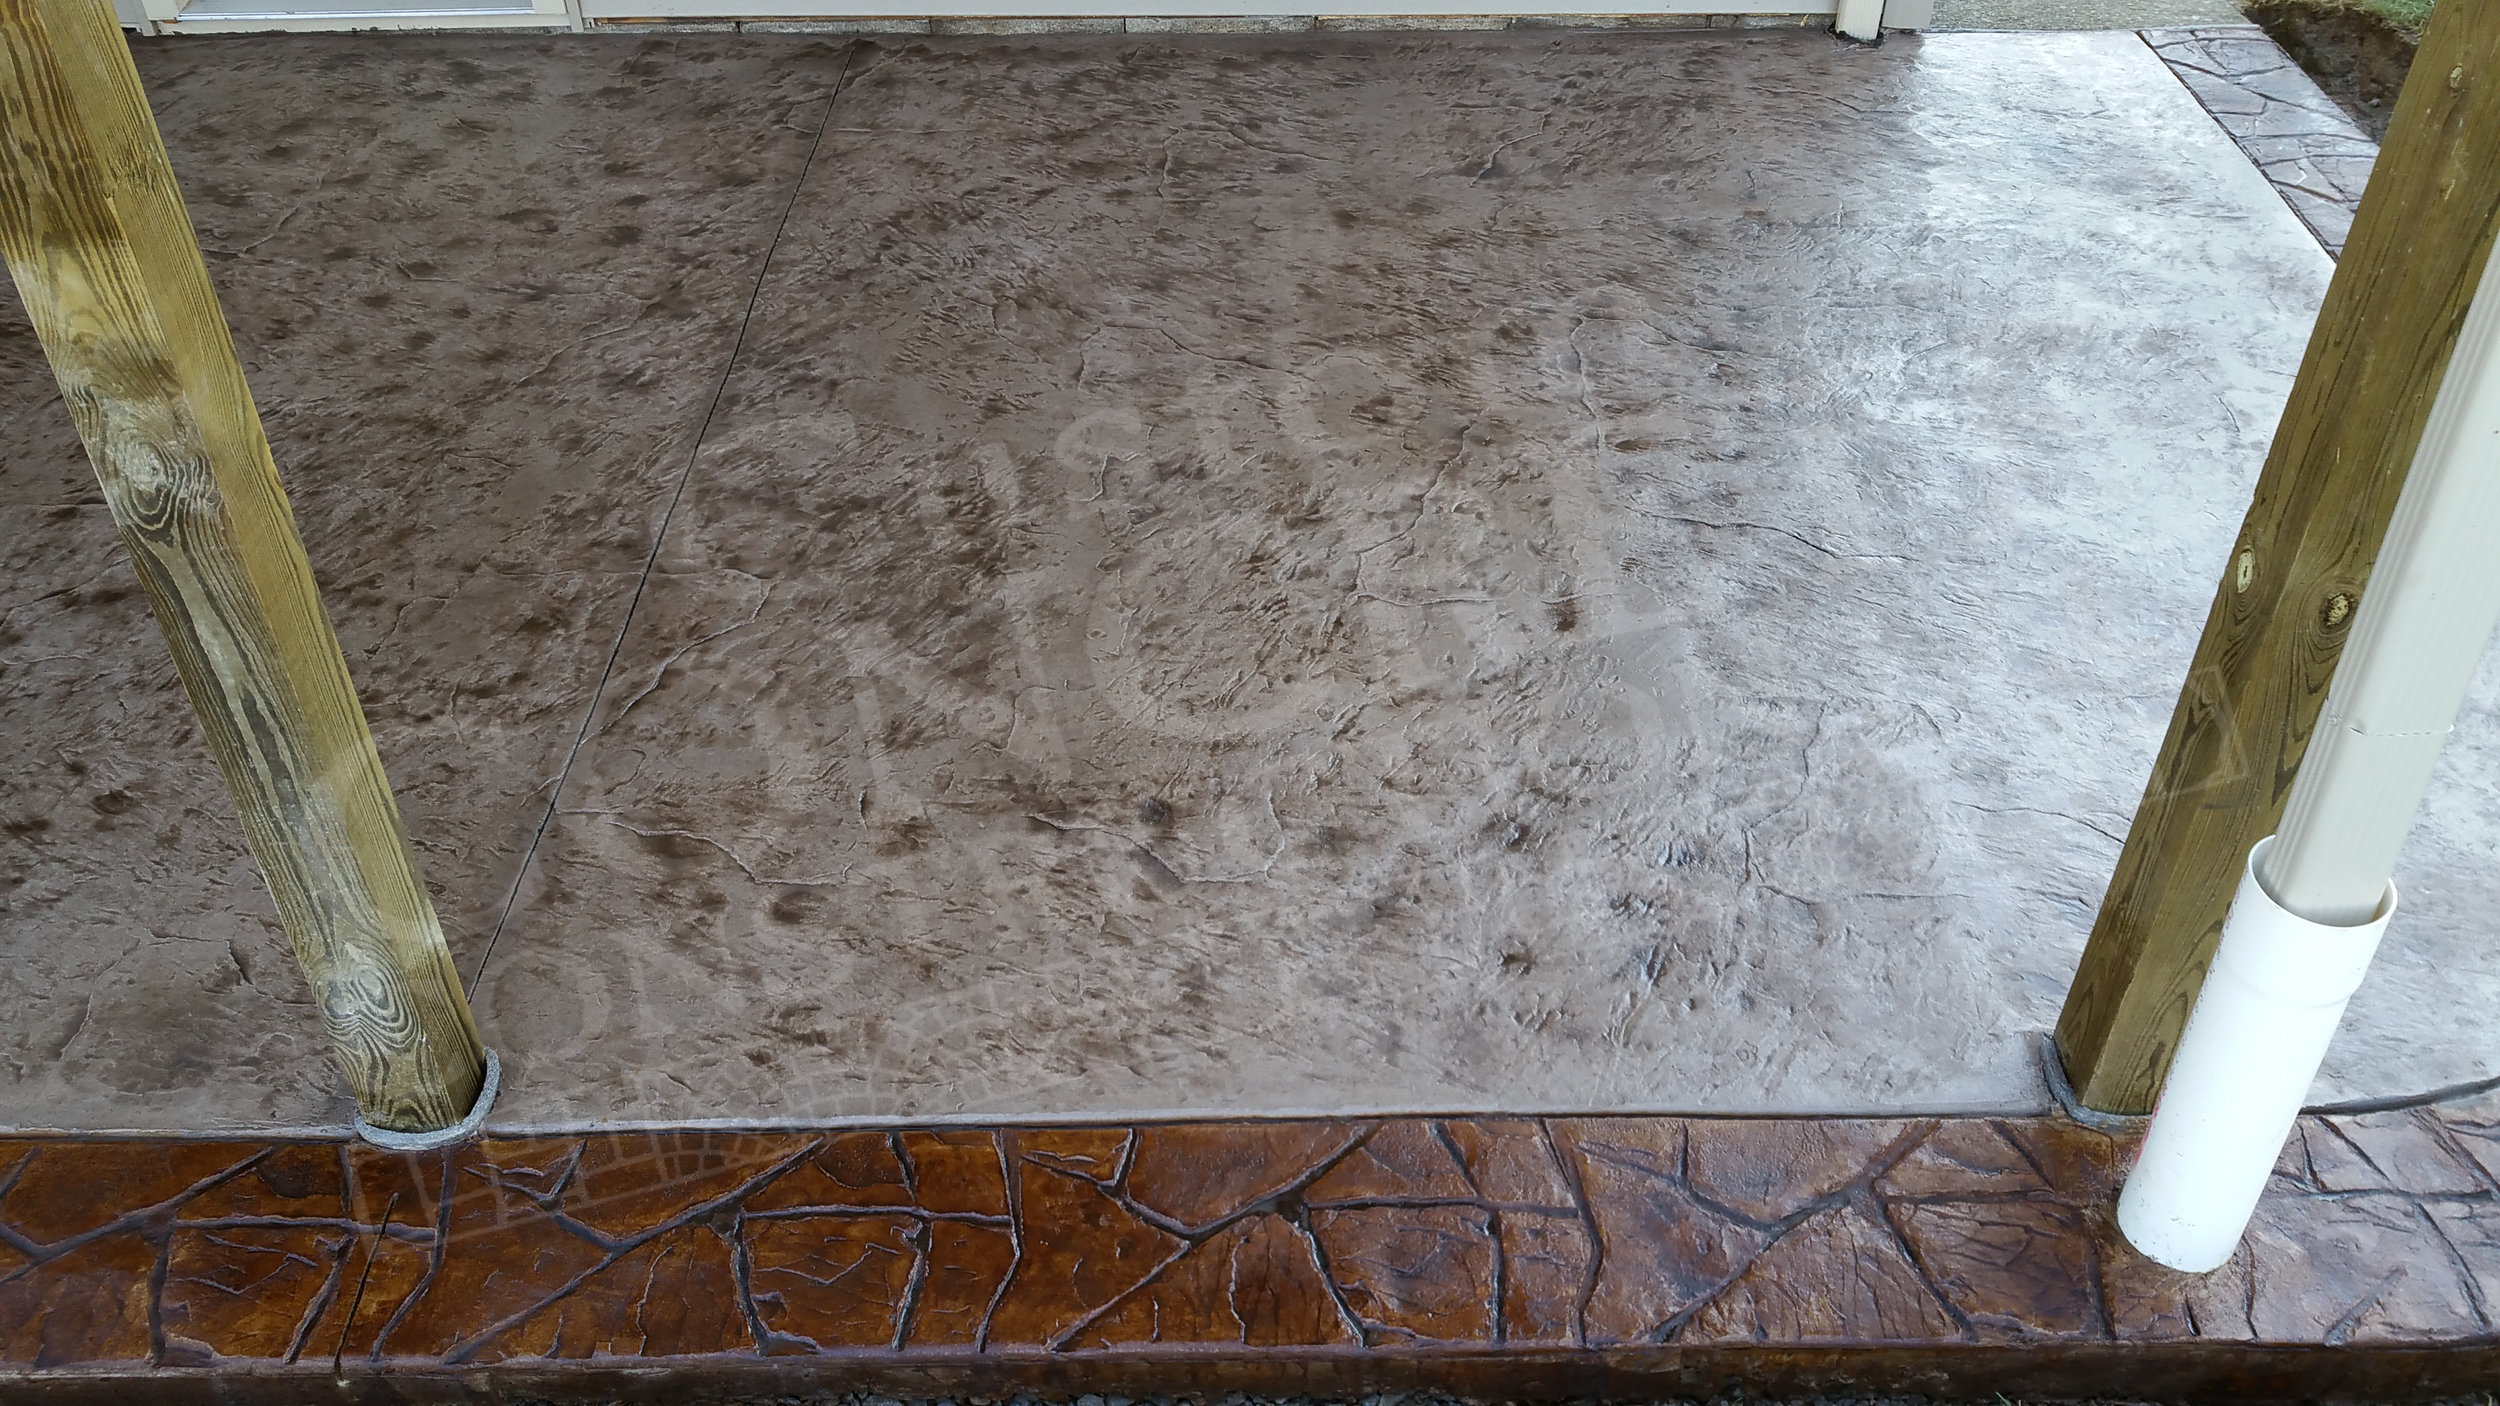 textured stamped interior with stamped canyon stone exterior border